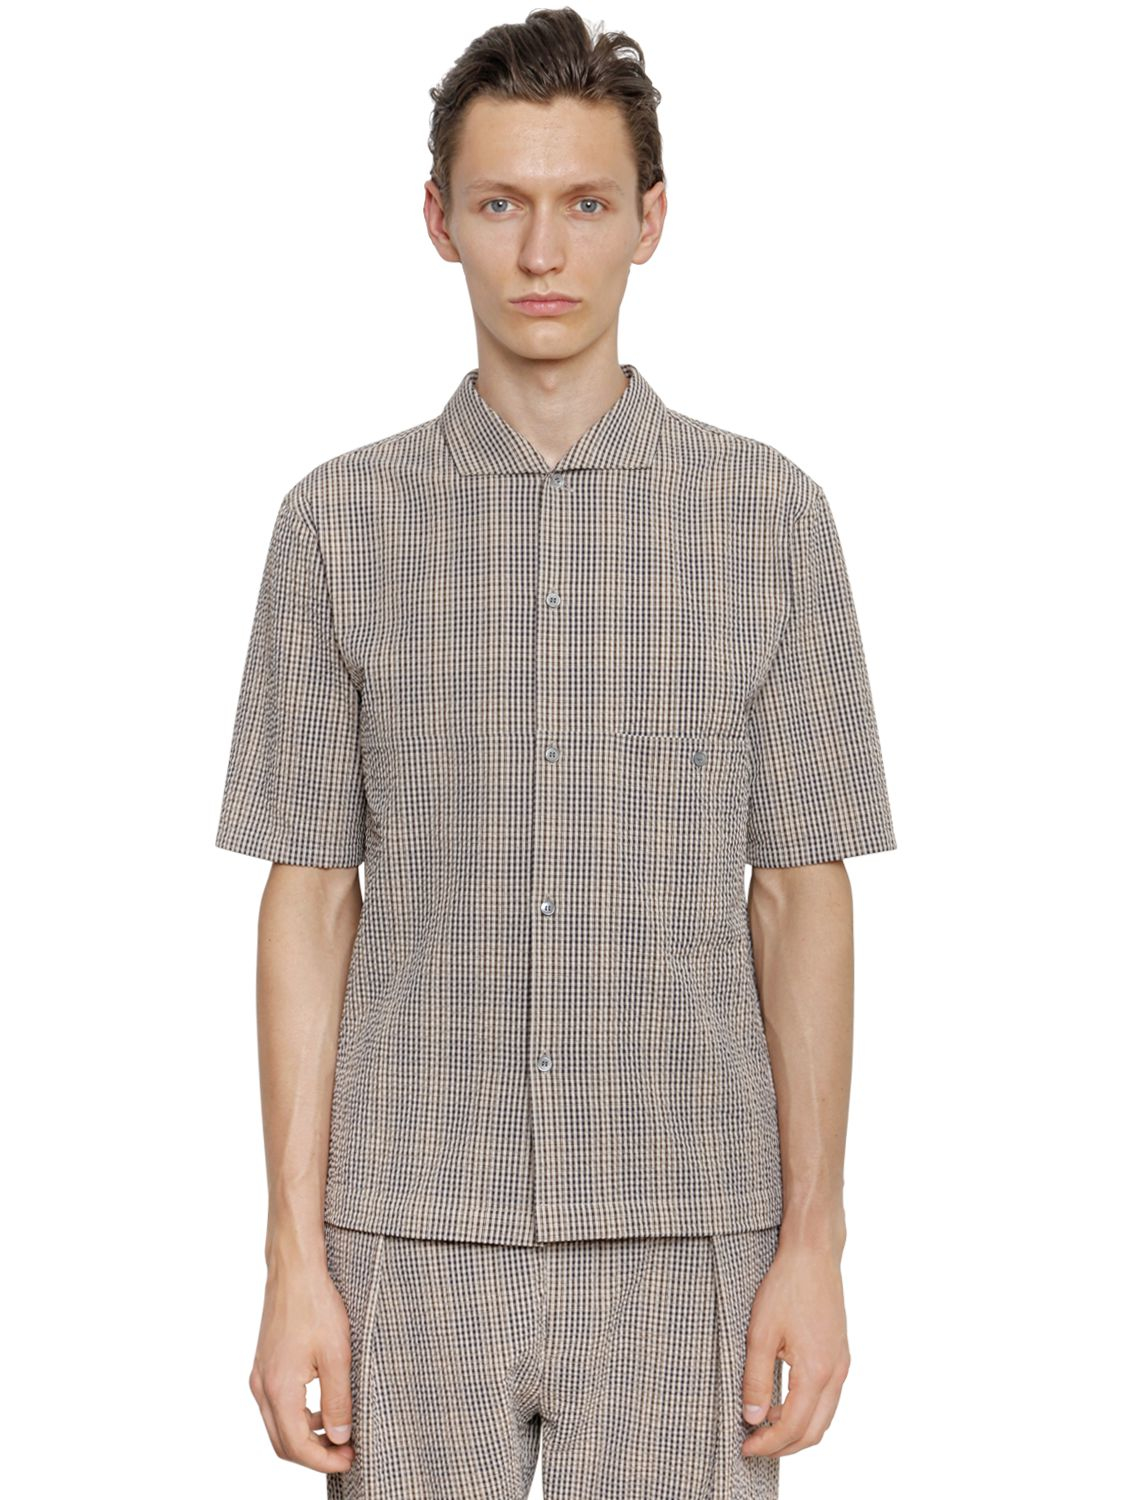 Christophe lemaire cotton seersucker short sleeve shirt in for Mens short sleeve seersucker shirts